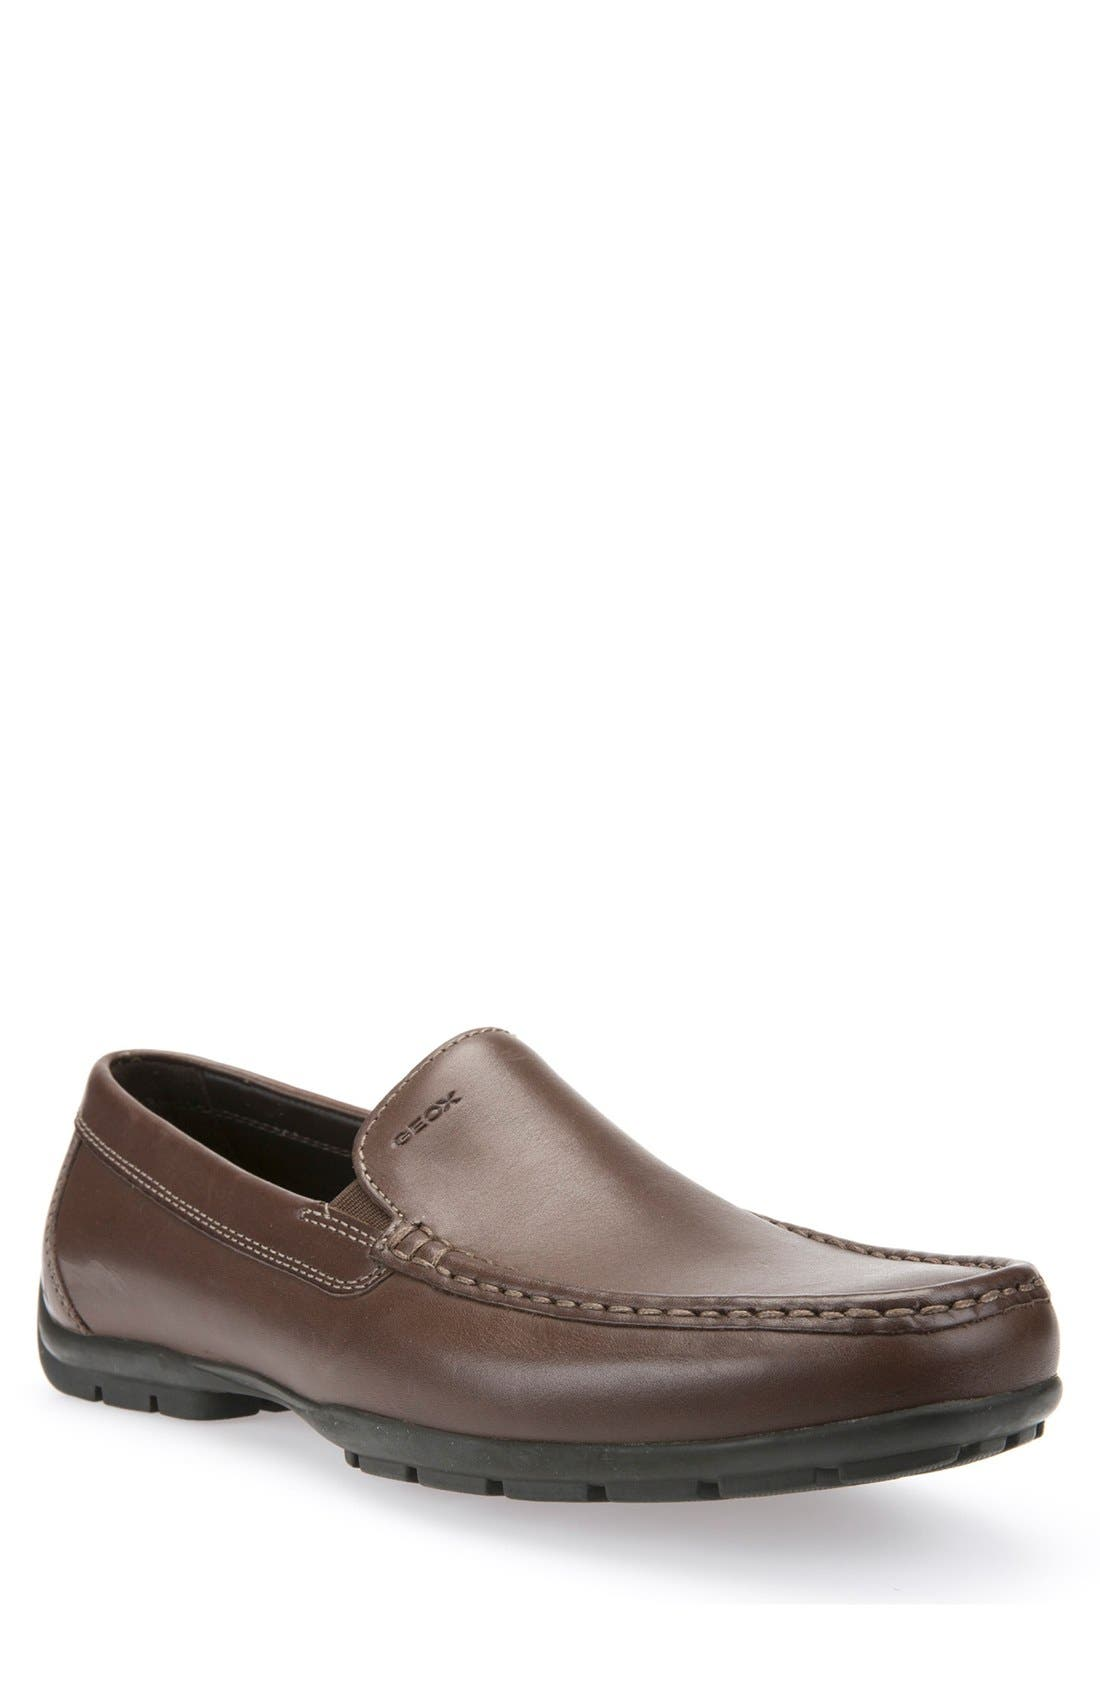 'Monet' Driving Shoe,                         Main,                         color, Light Brown Leather